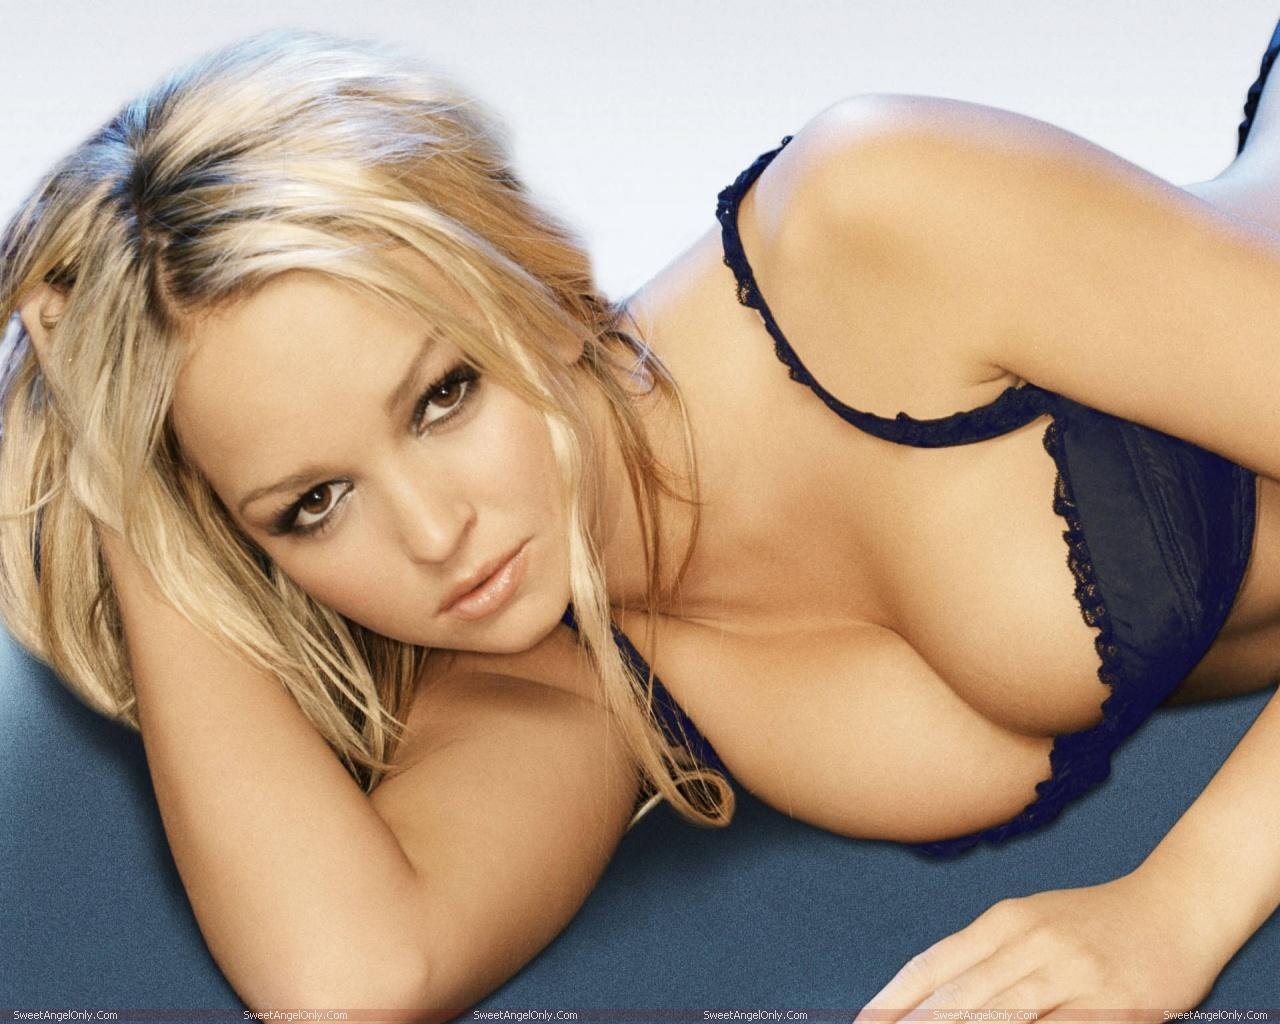 http://3.bp.blogspot.com/-qw0CV9FOrSY/TWZWGXEJzwI/AAAAAAAAEpA/SOvhYCFufD0/s1600/actress_jennifer_ellison_hot_wallpapers_in_bikini_sweetangelonly_21.jpg